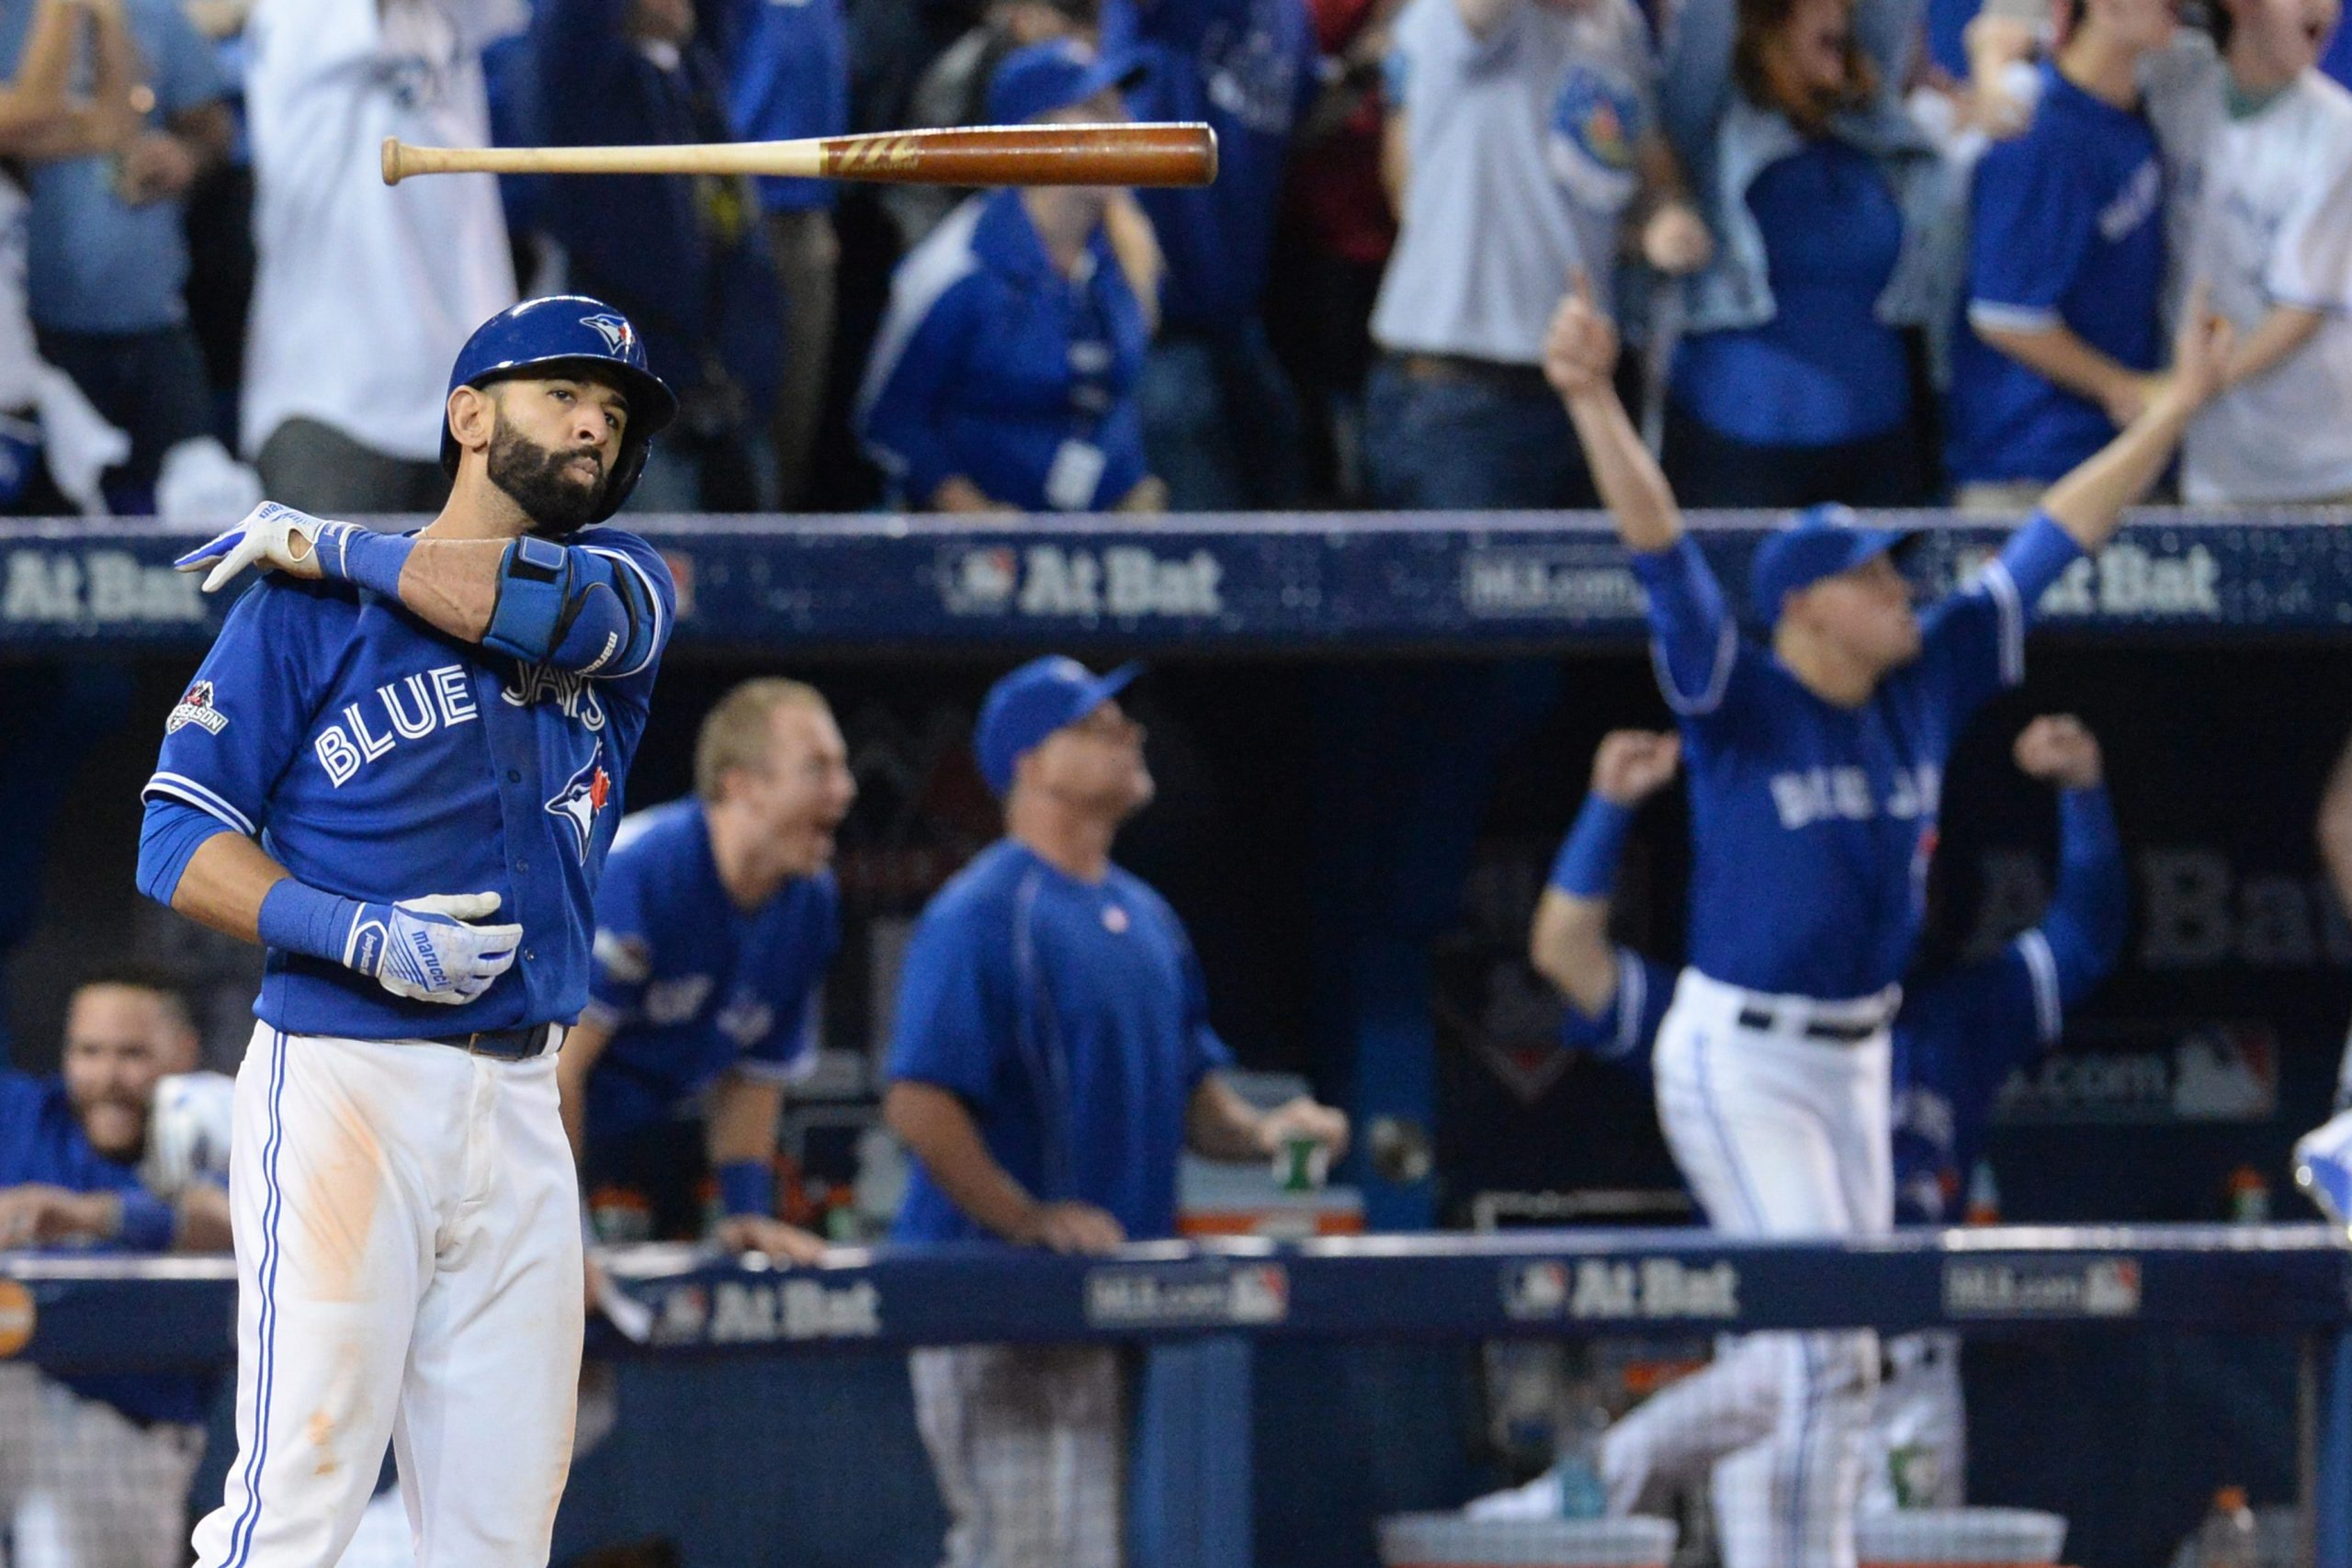 Blue Jays sign Jose Bautista to one-year, $18M contract